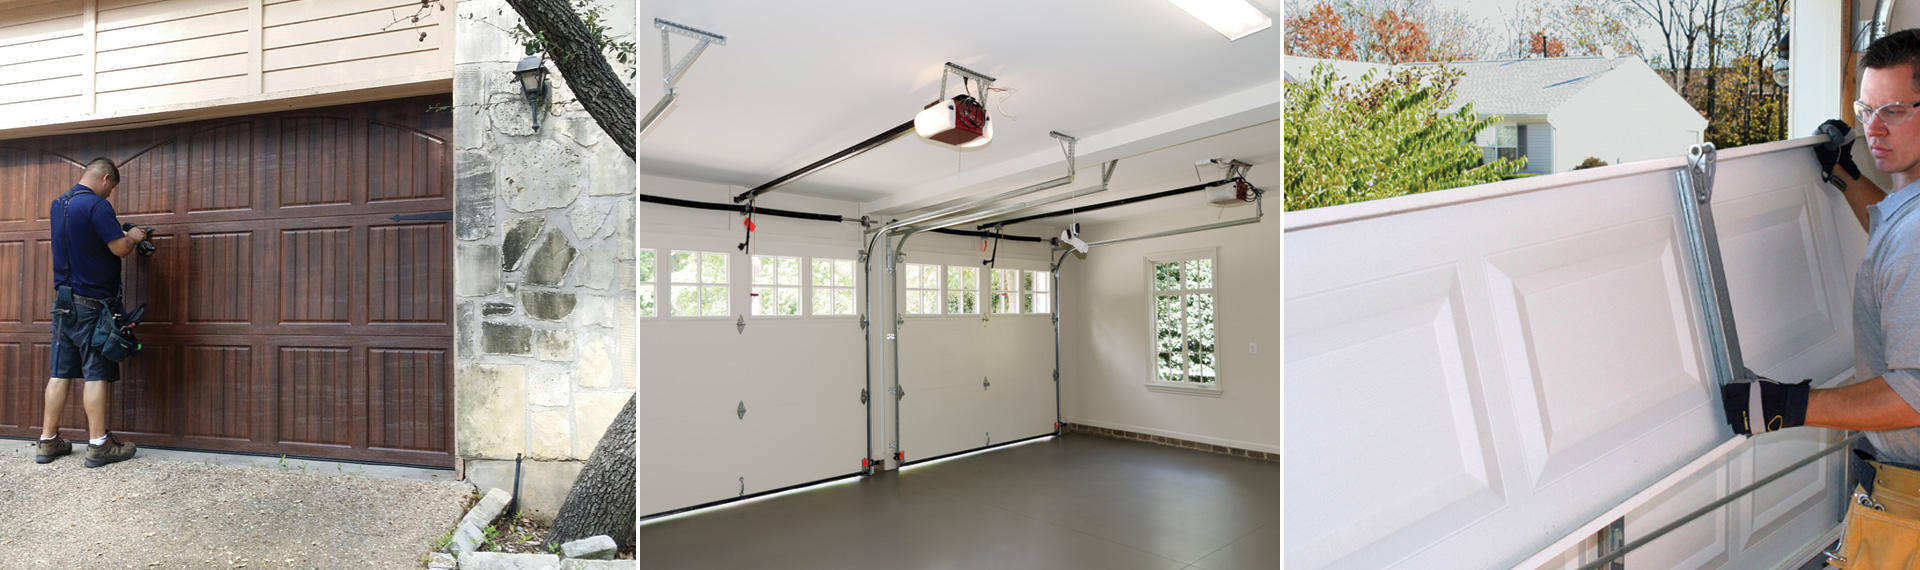 All Garage Door Services Newtown Square PA